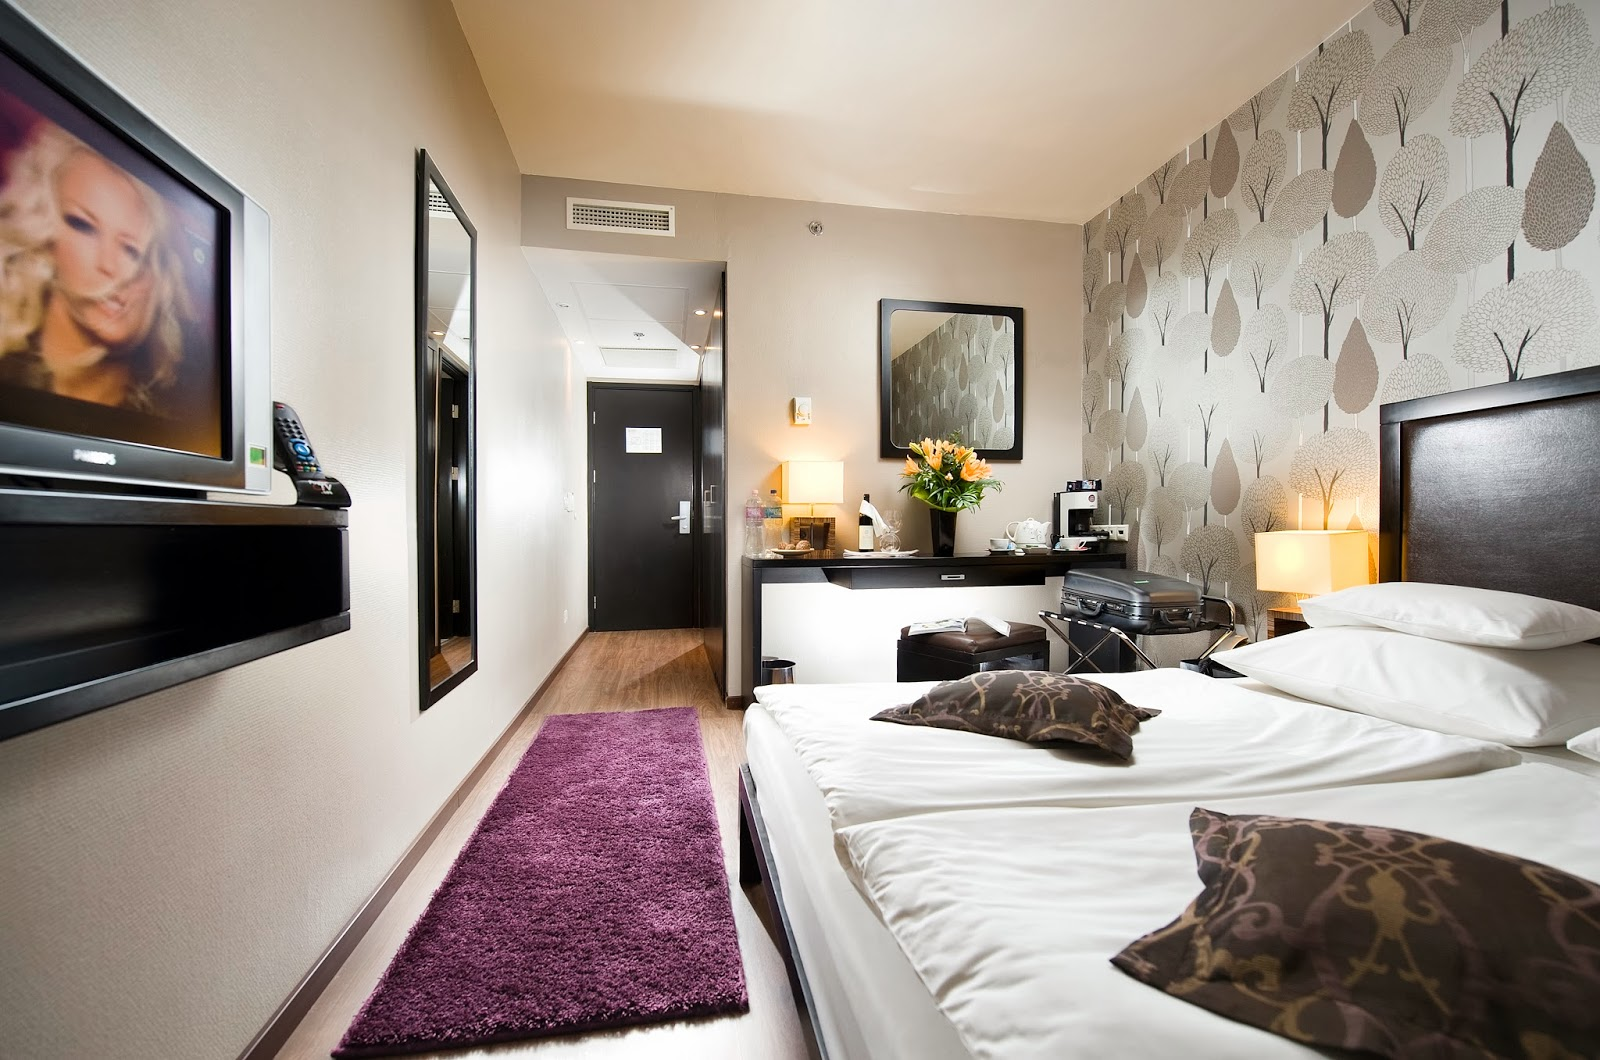 Esthoria zara boutique hotel for Zara hotel budapest